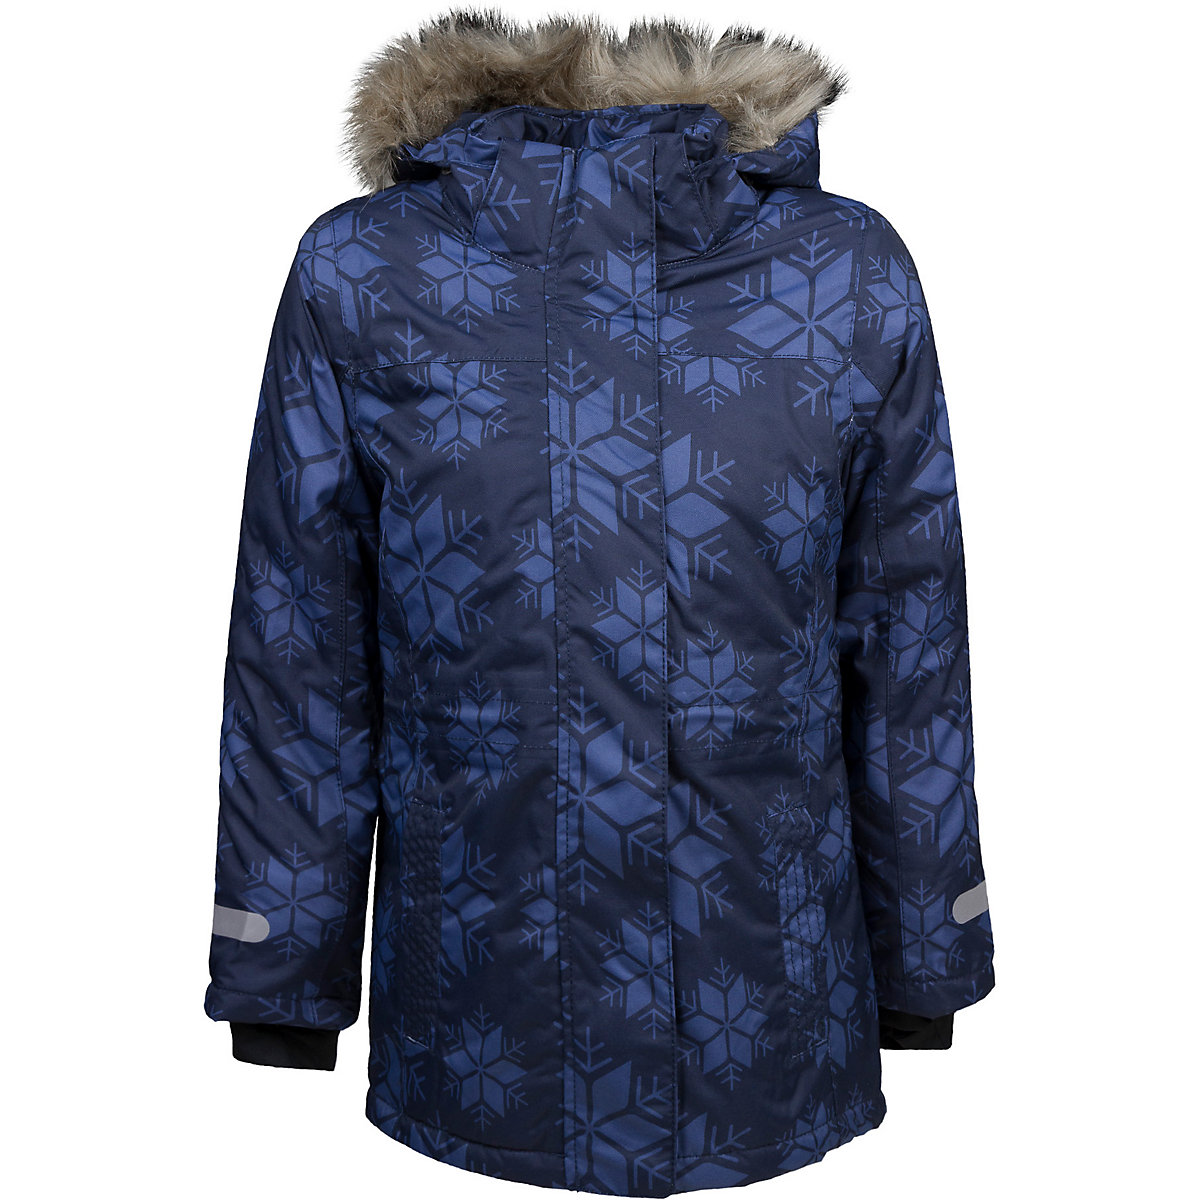 Jackets & Coats TICKET TO HEAVEN for girls 8954449 Jacket Coat Denim Cardigan Warm Children clothes Kids men skiing jackets warm waterproof windproof cotton snowboarding jacket shooting camping travel climbing skating hiking ski coat